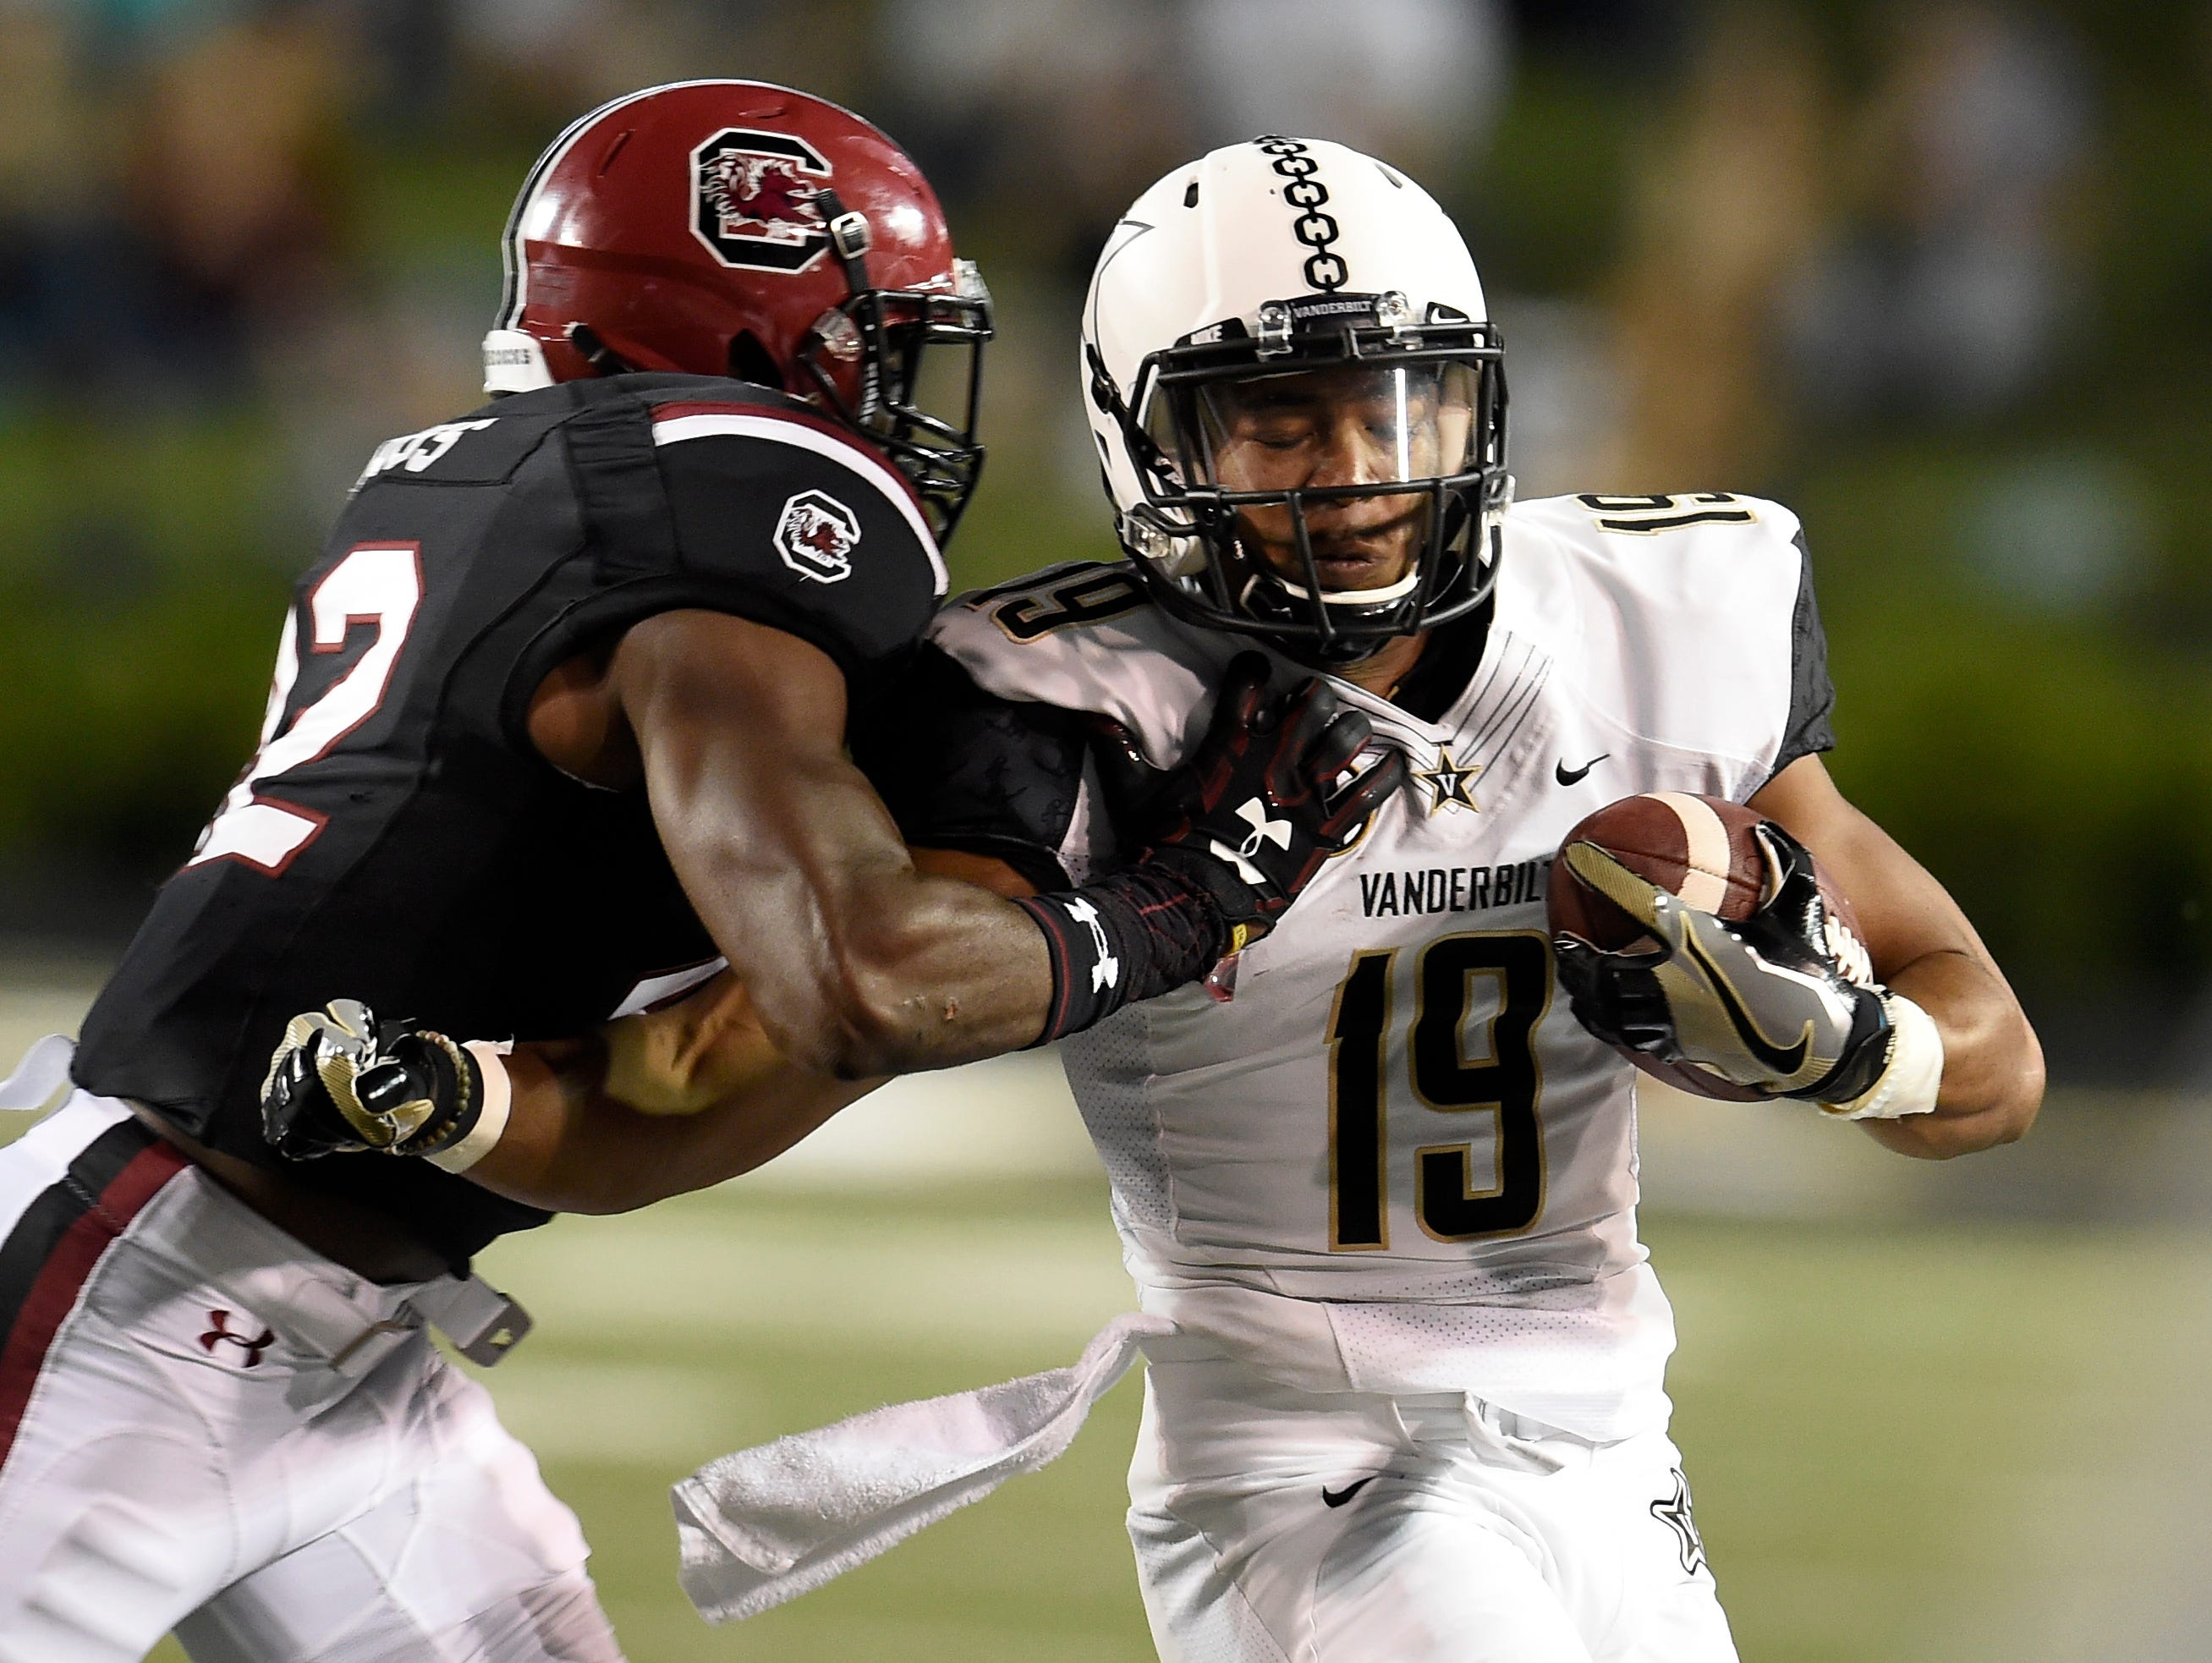 Vanderbilt wide receiver C.J. Duncan (19) tries to move the ball in the first quarter against South Carolina defensive back Jordan Diggs (42) on Sept. 1, 2016.